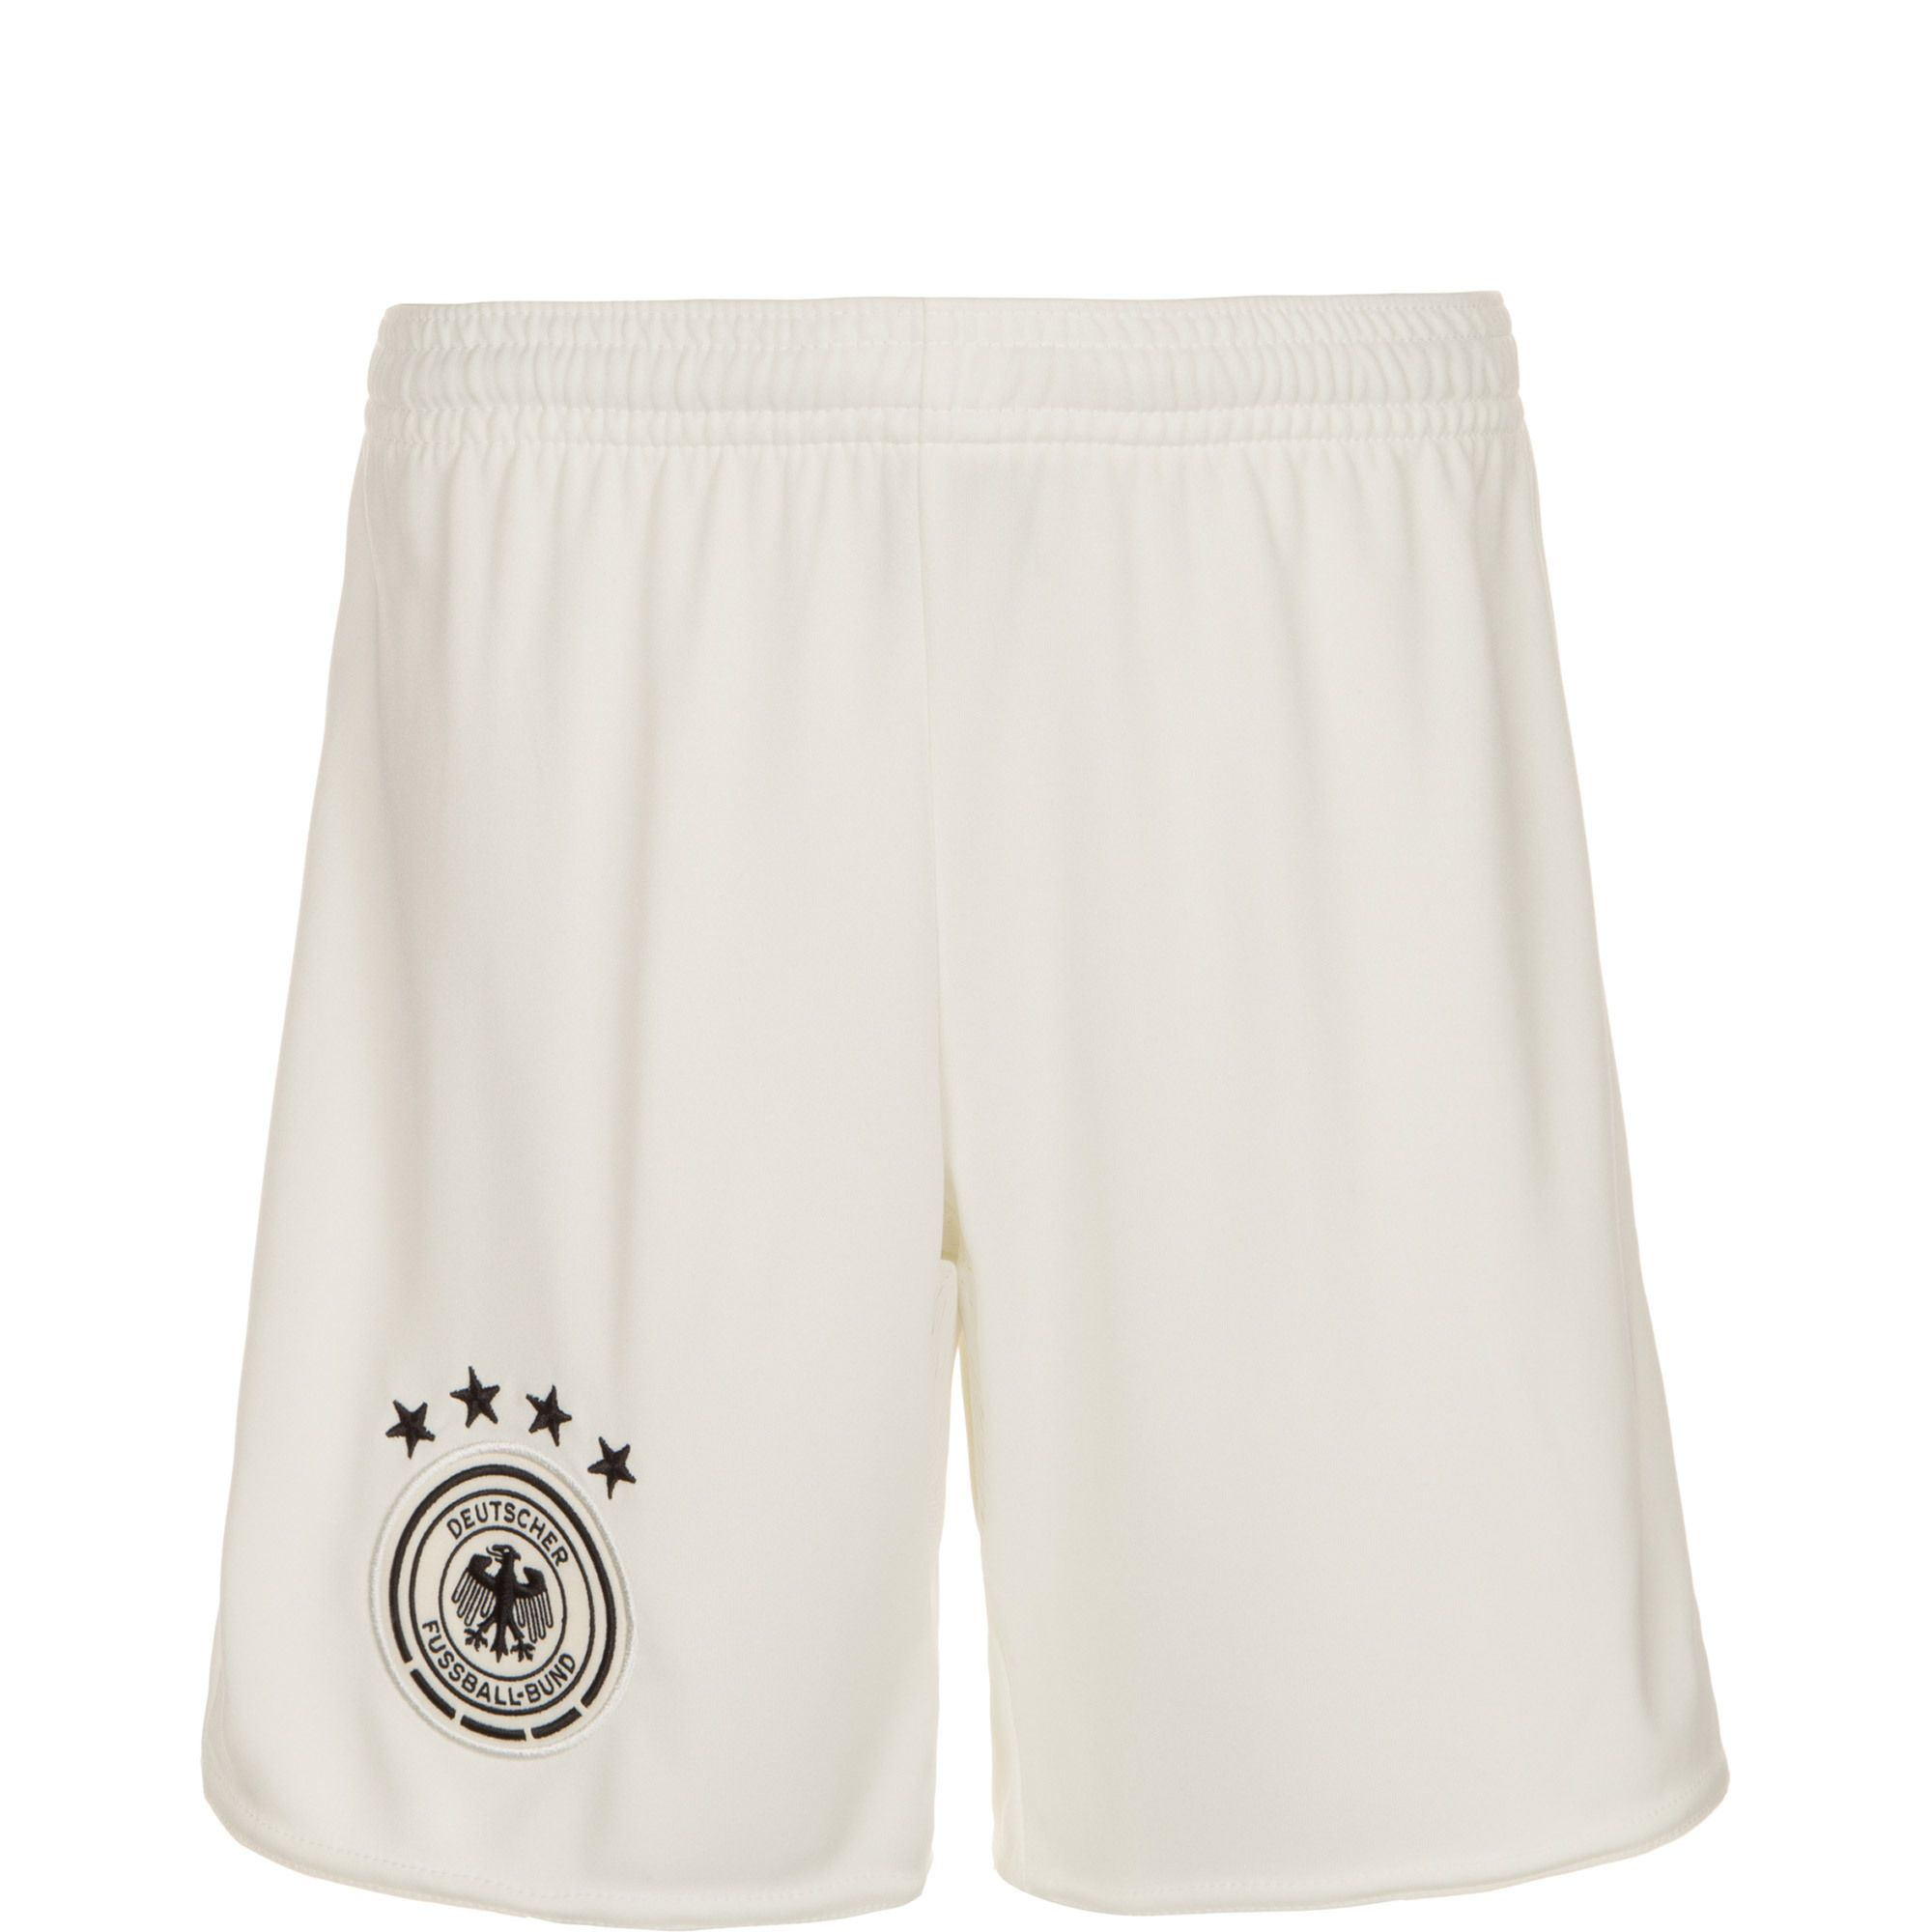 ADIDAS PERFORMANCE adidas Performance DFB Short Away EM 2016 Kinder